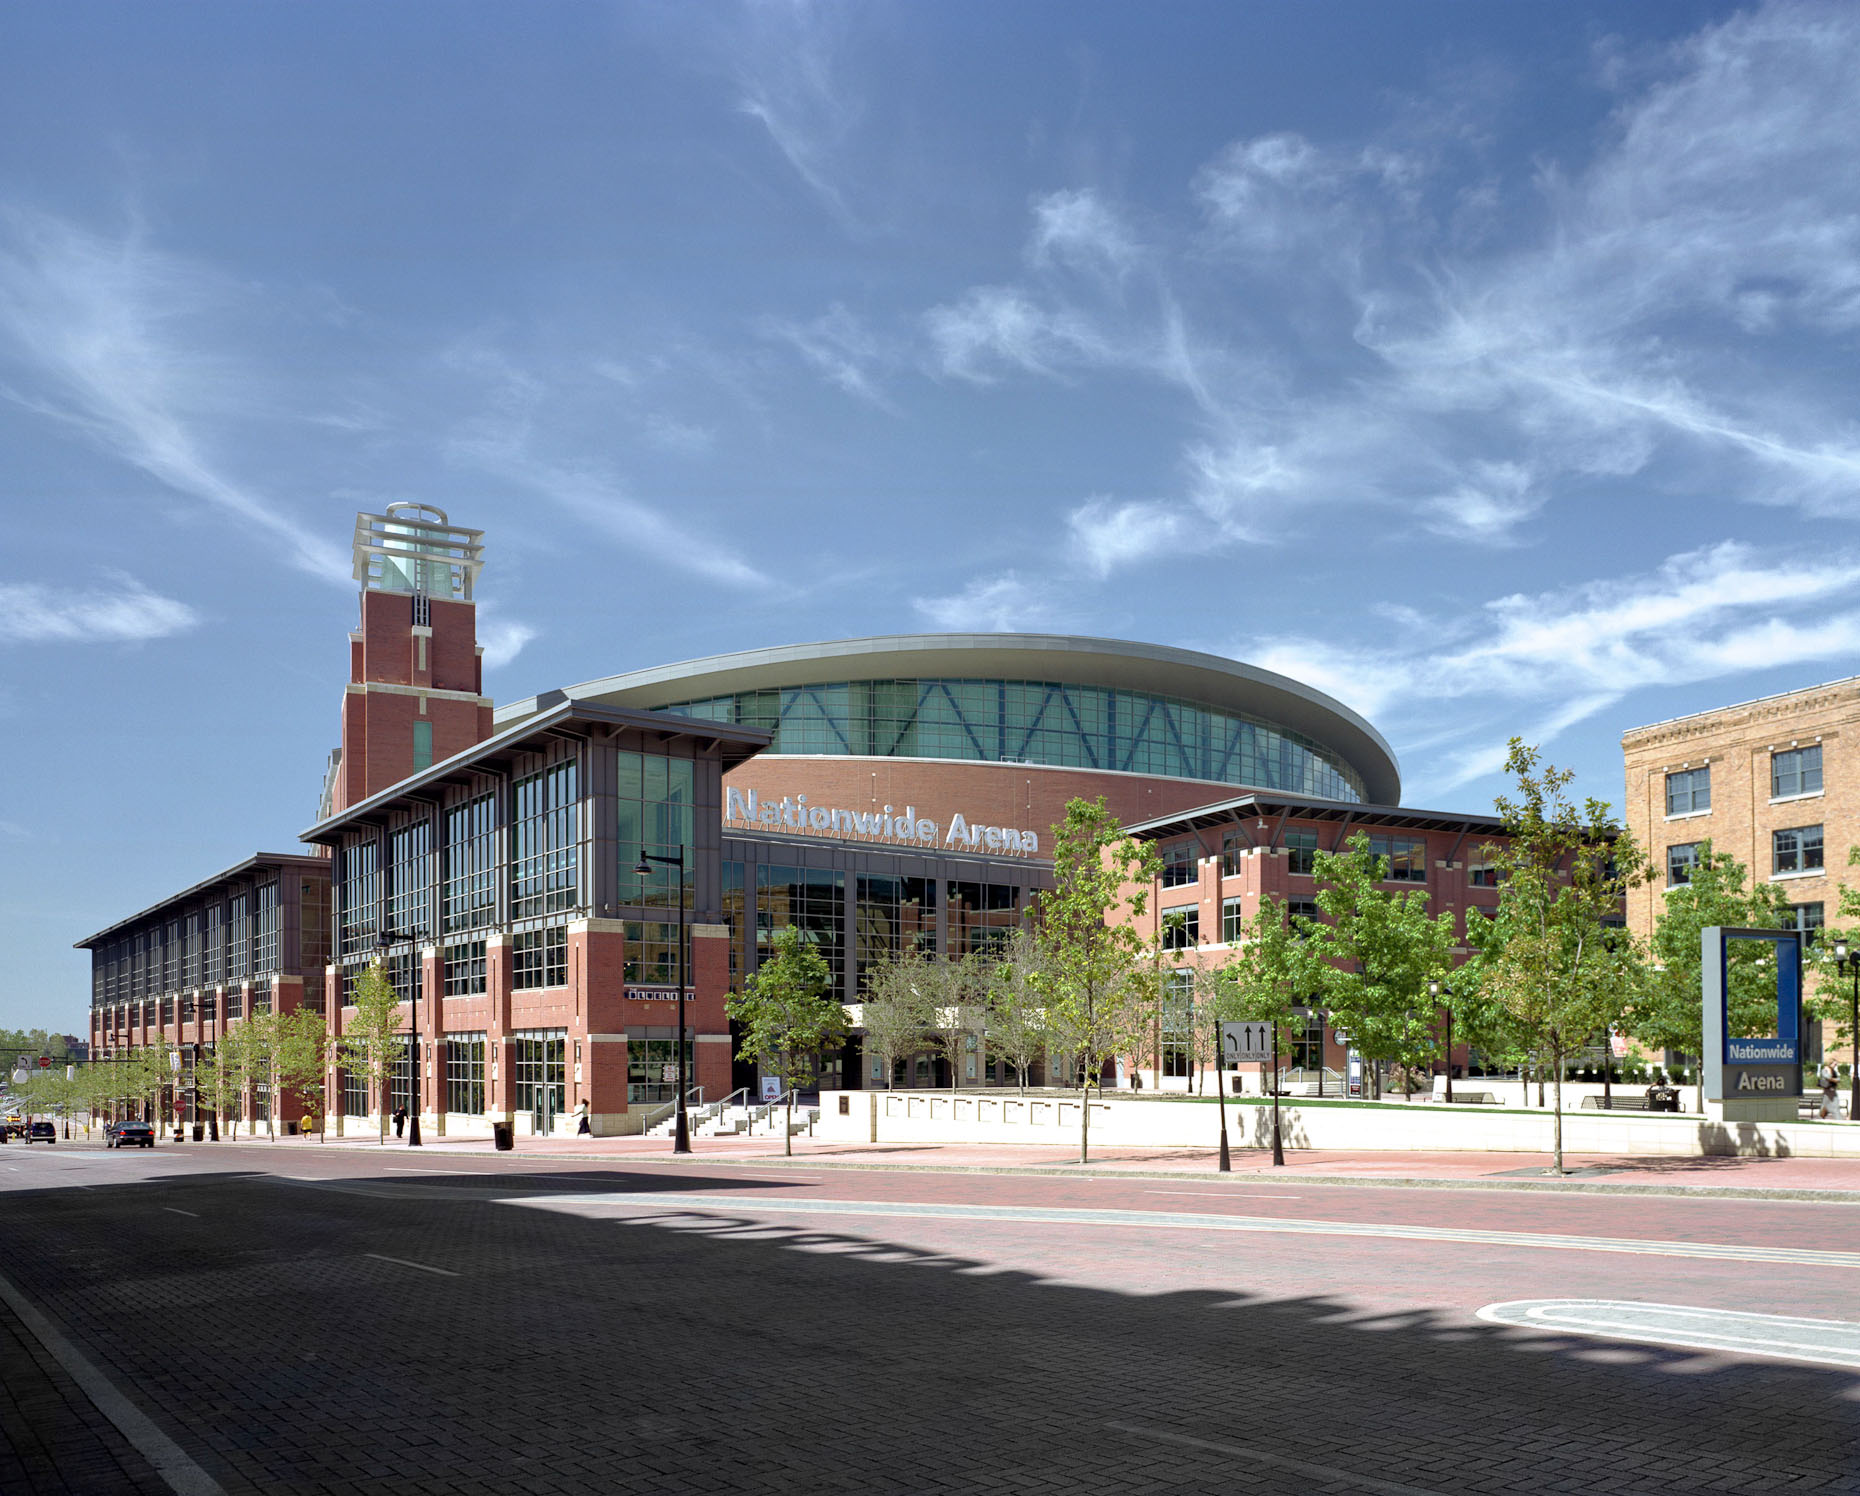 Nationwide Arena by 360 Architecture / HOK photographed by Brad Feinknopf based in Columbus, Ohio